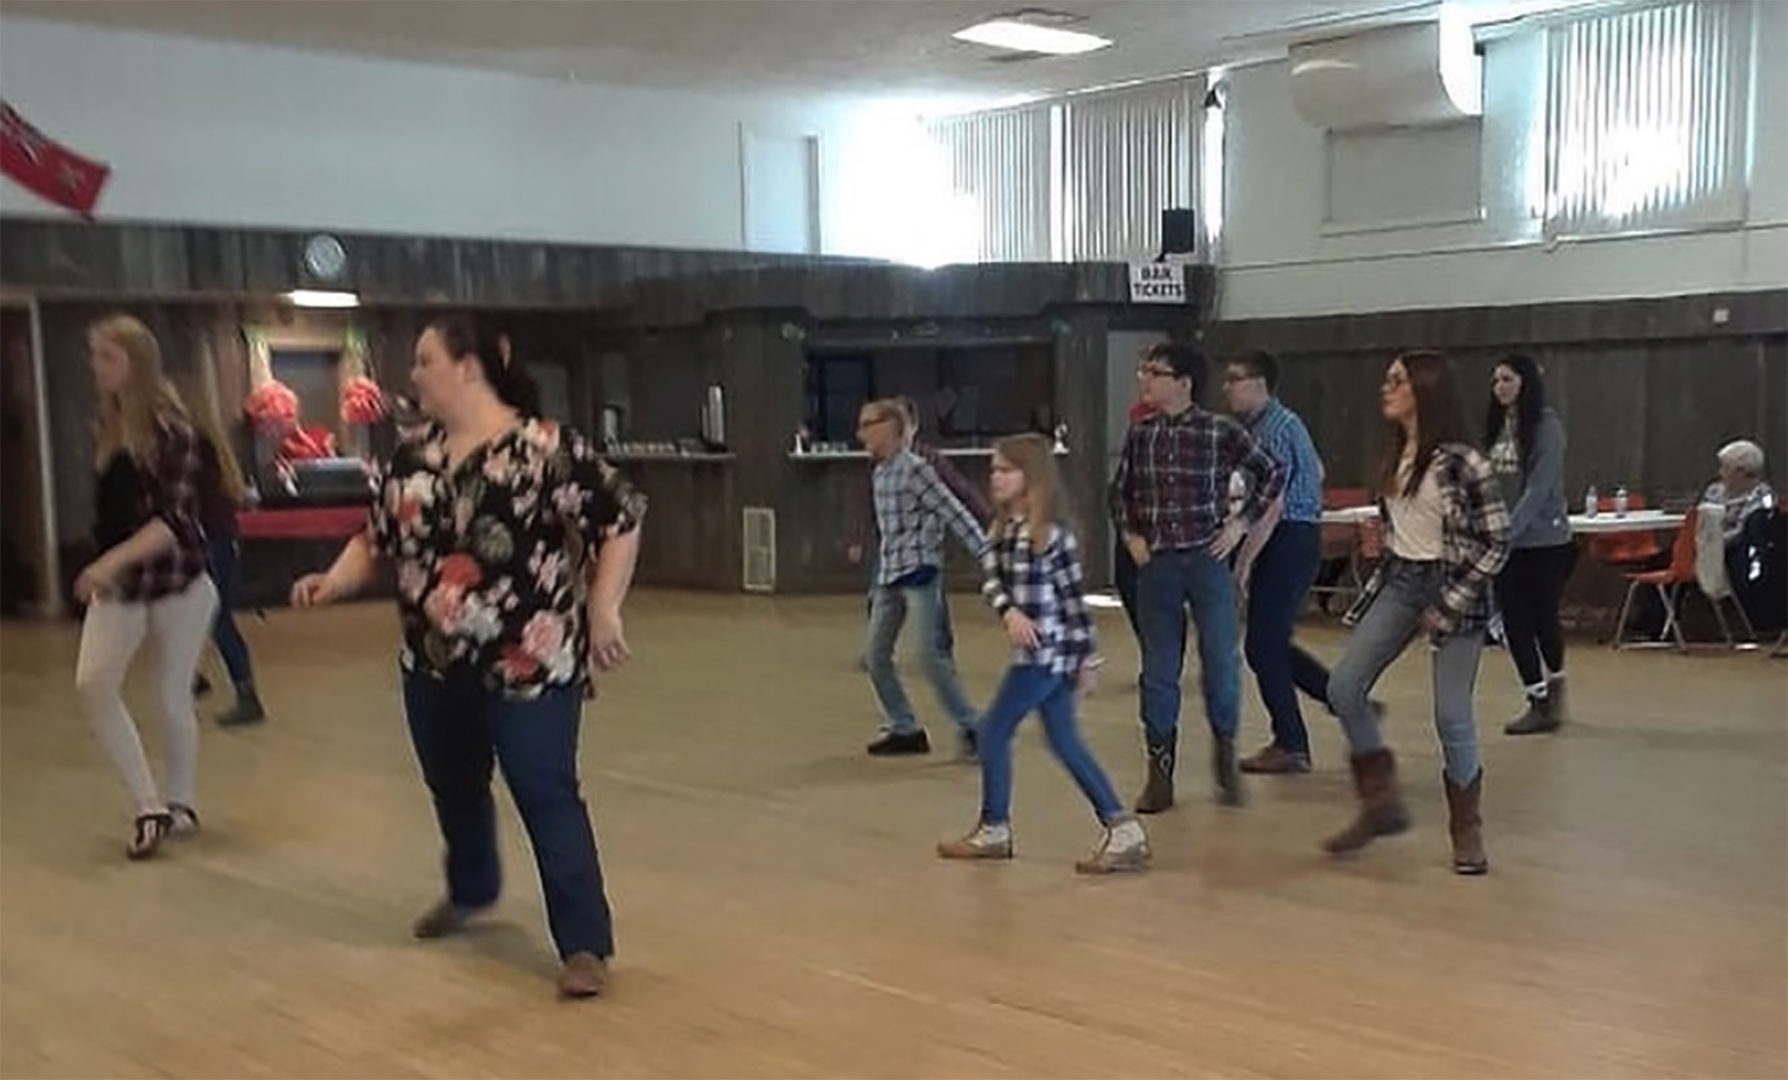 Group of kids and adults learning to square dance in community hall